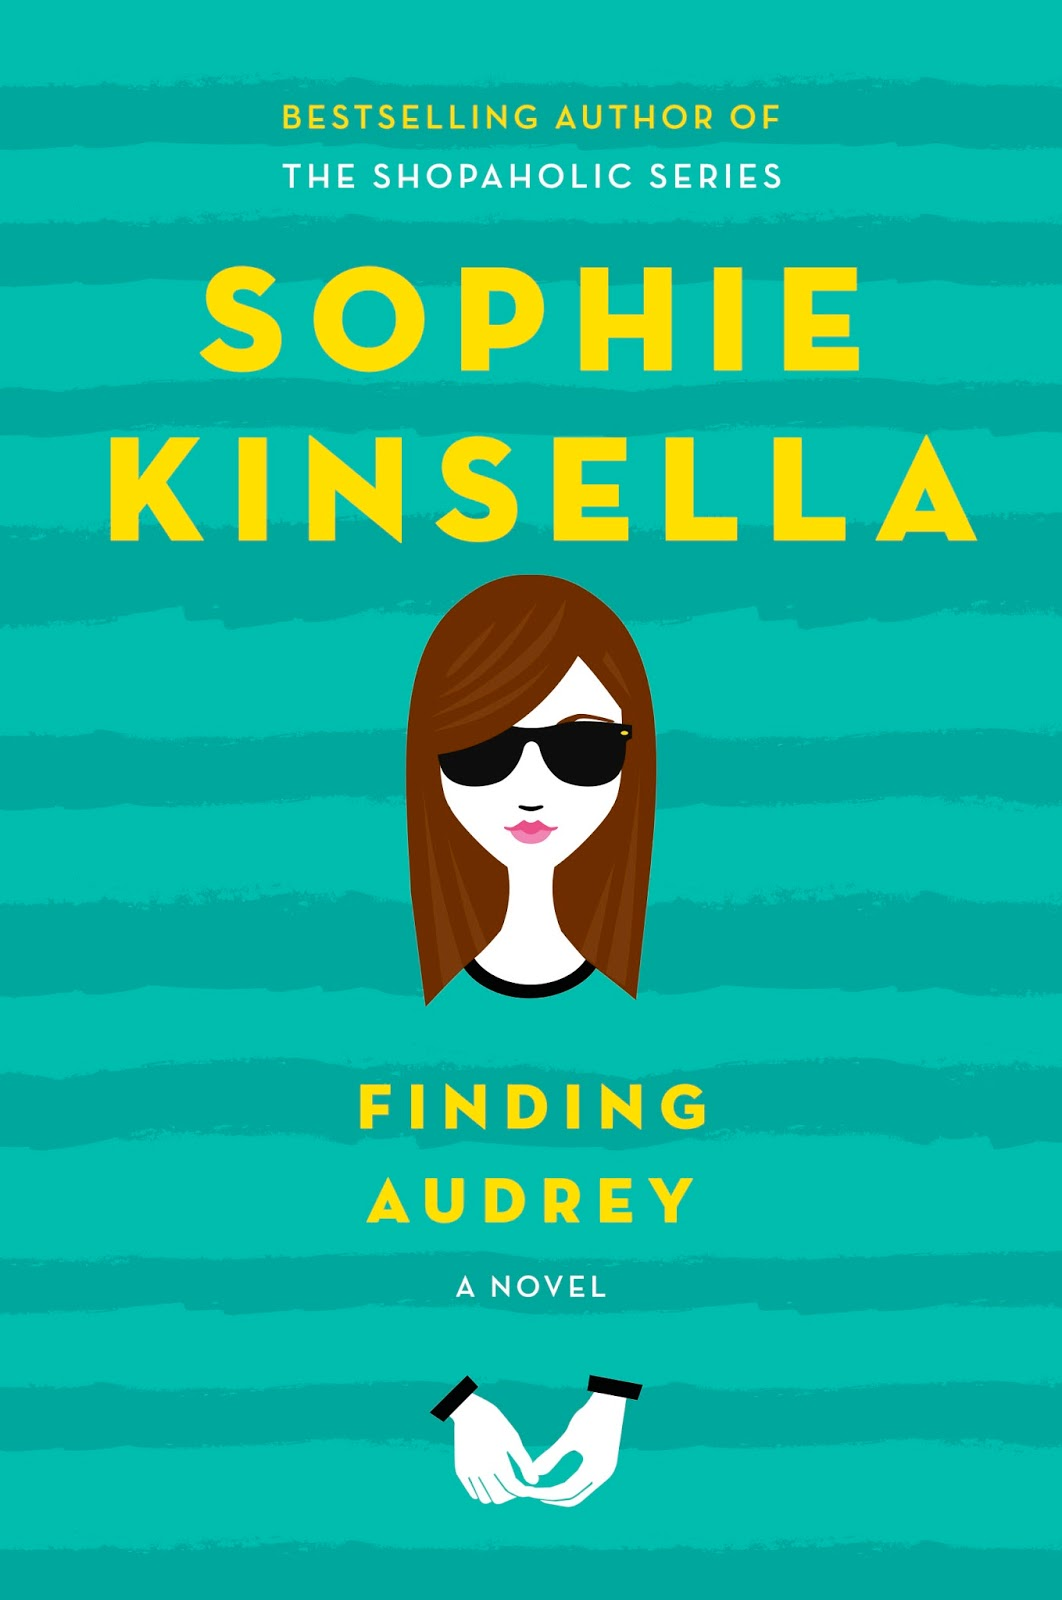 Finding Audrey by Sophie Kinsella -  The 29 Best YA Book Covers of 2015 as Chosen by Epic Reads Designers